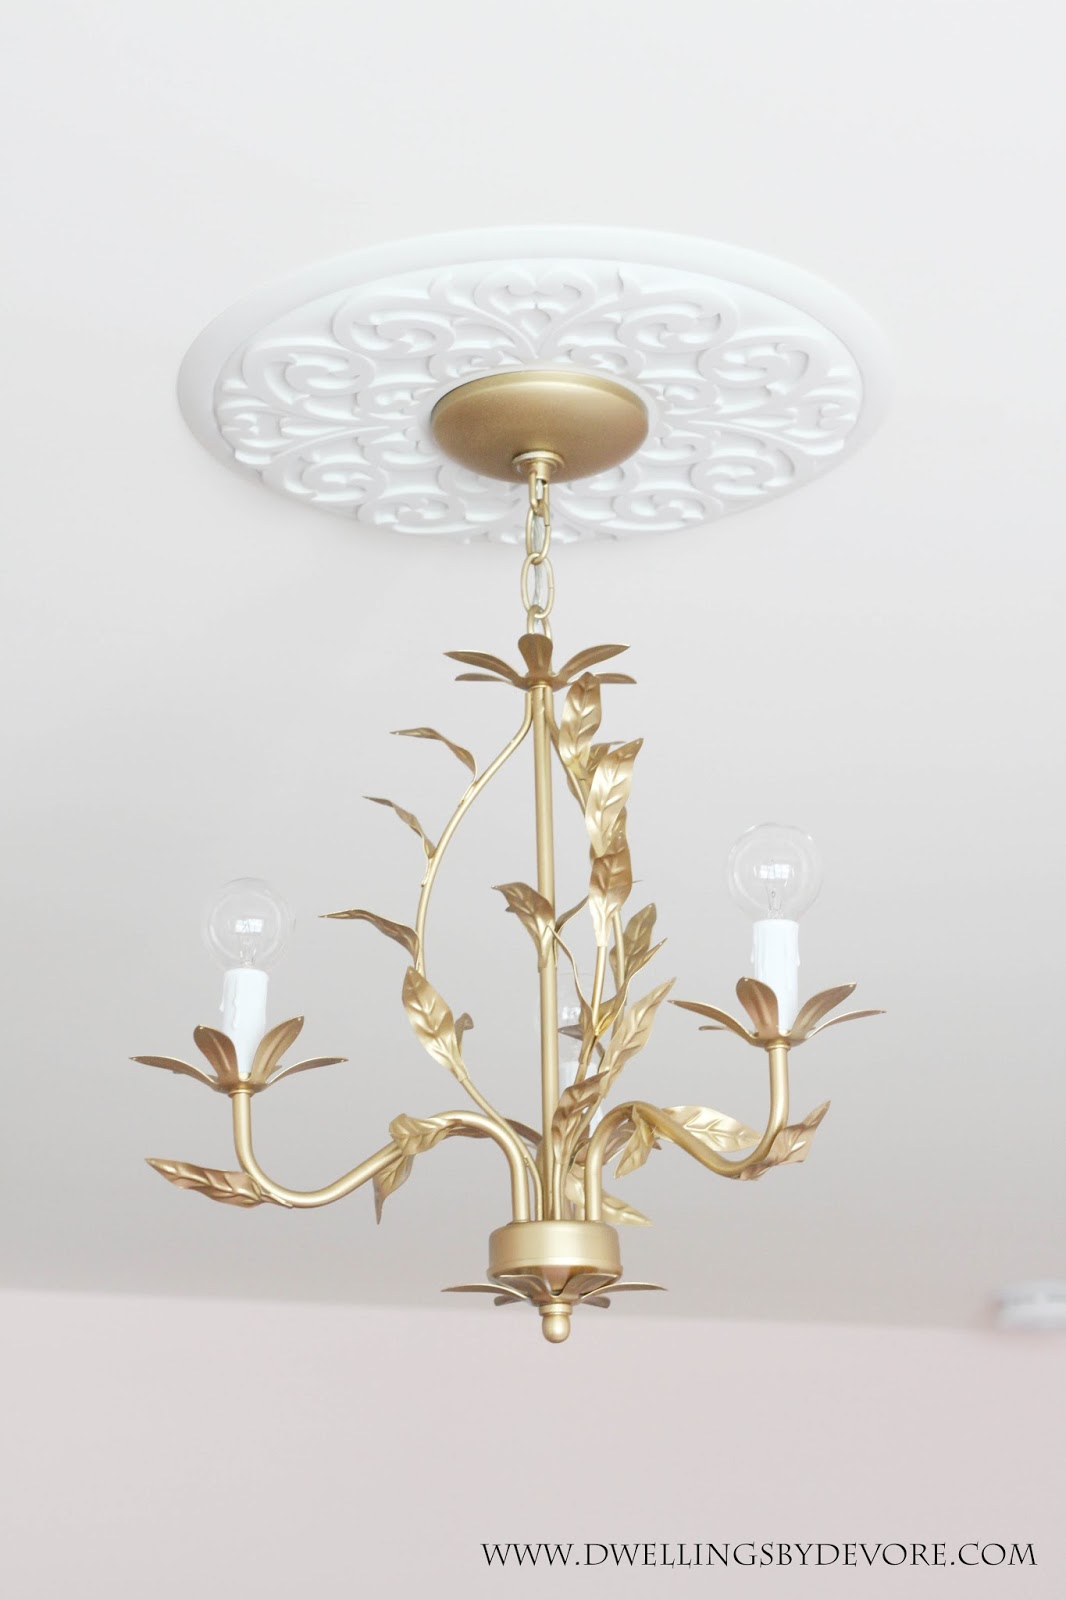 Dwellings by devore gold chandelier after seeing jennifers beautiful chandelier transformation i decided round bulbs would give it the perfect little modern touch i was looking for aloadofball Gallery